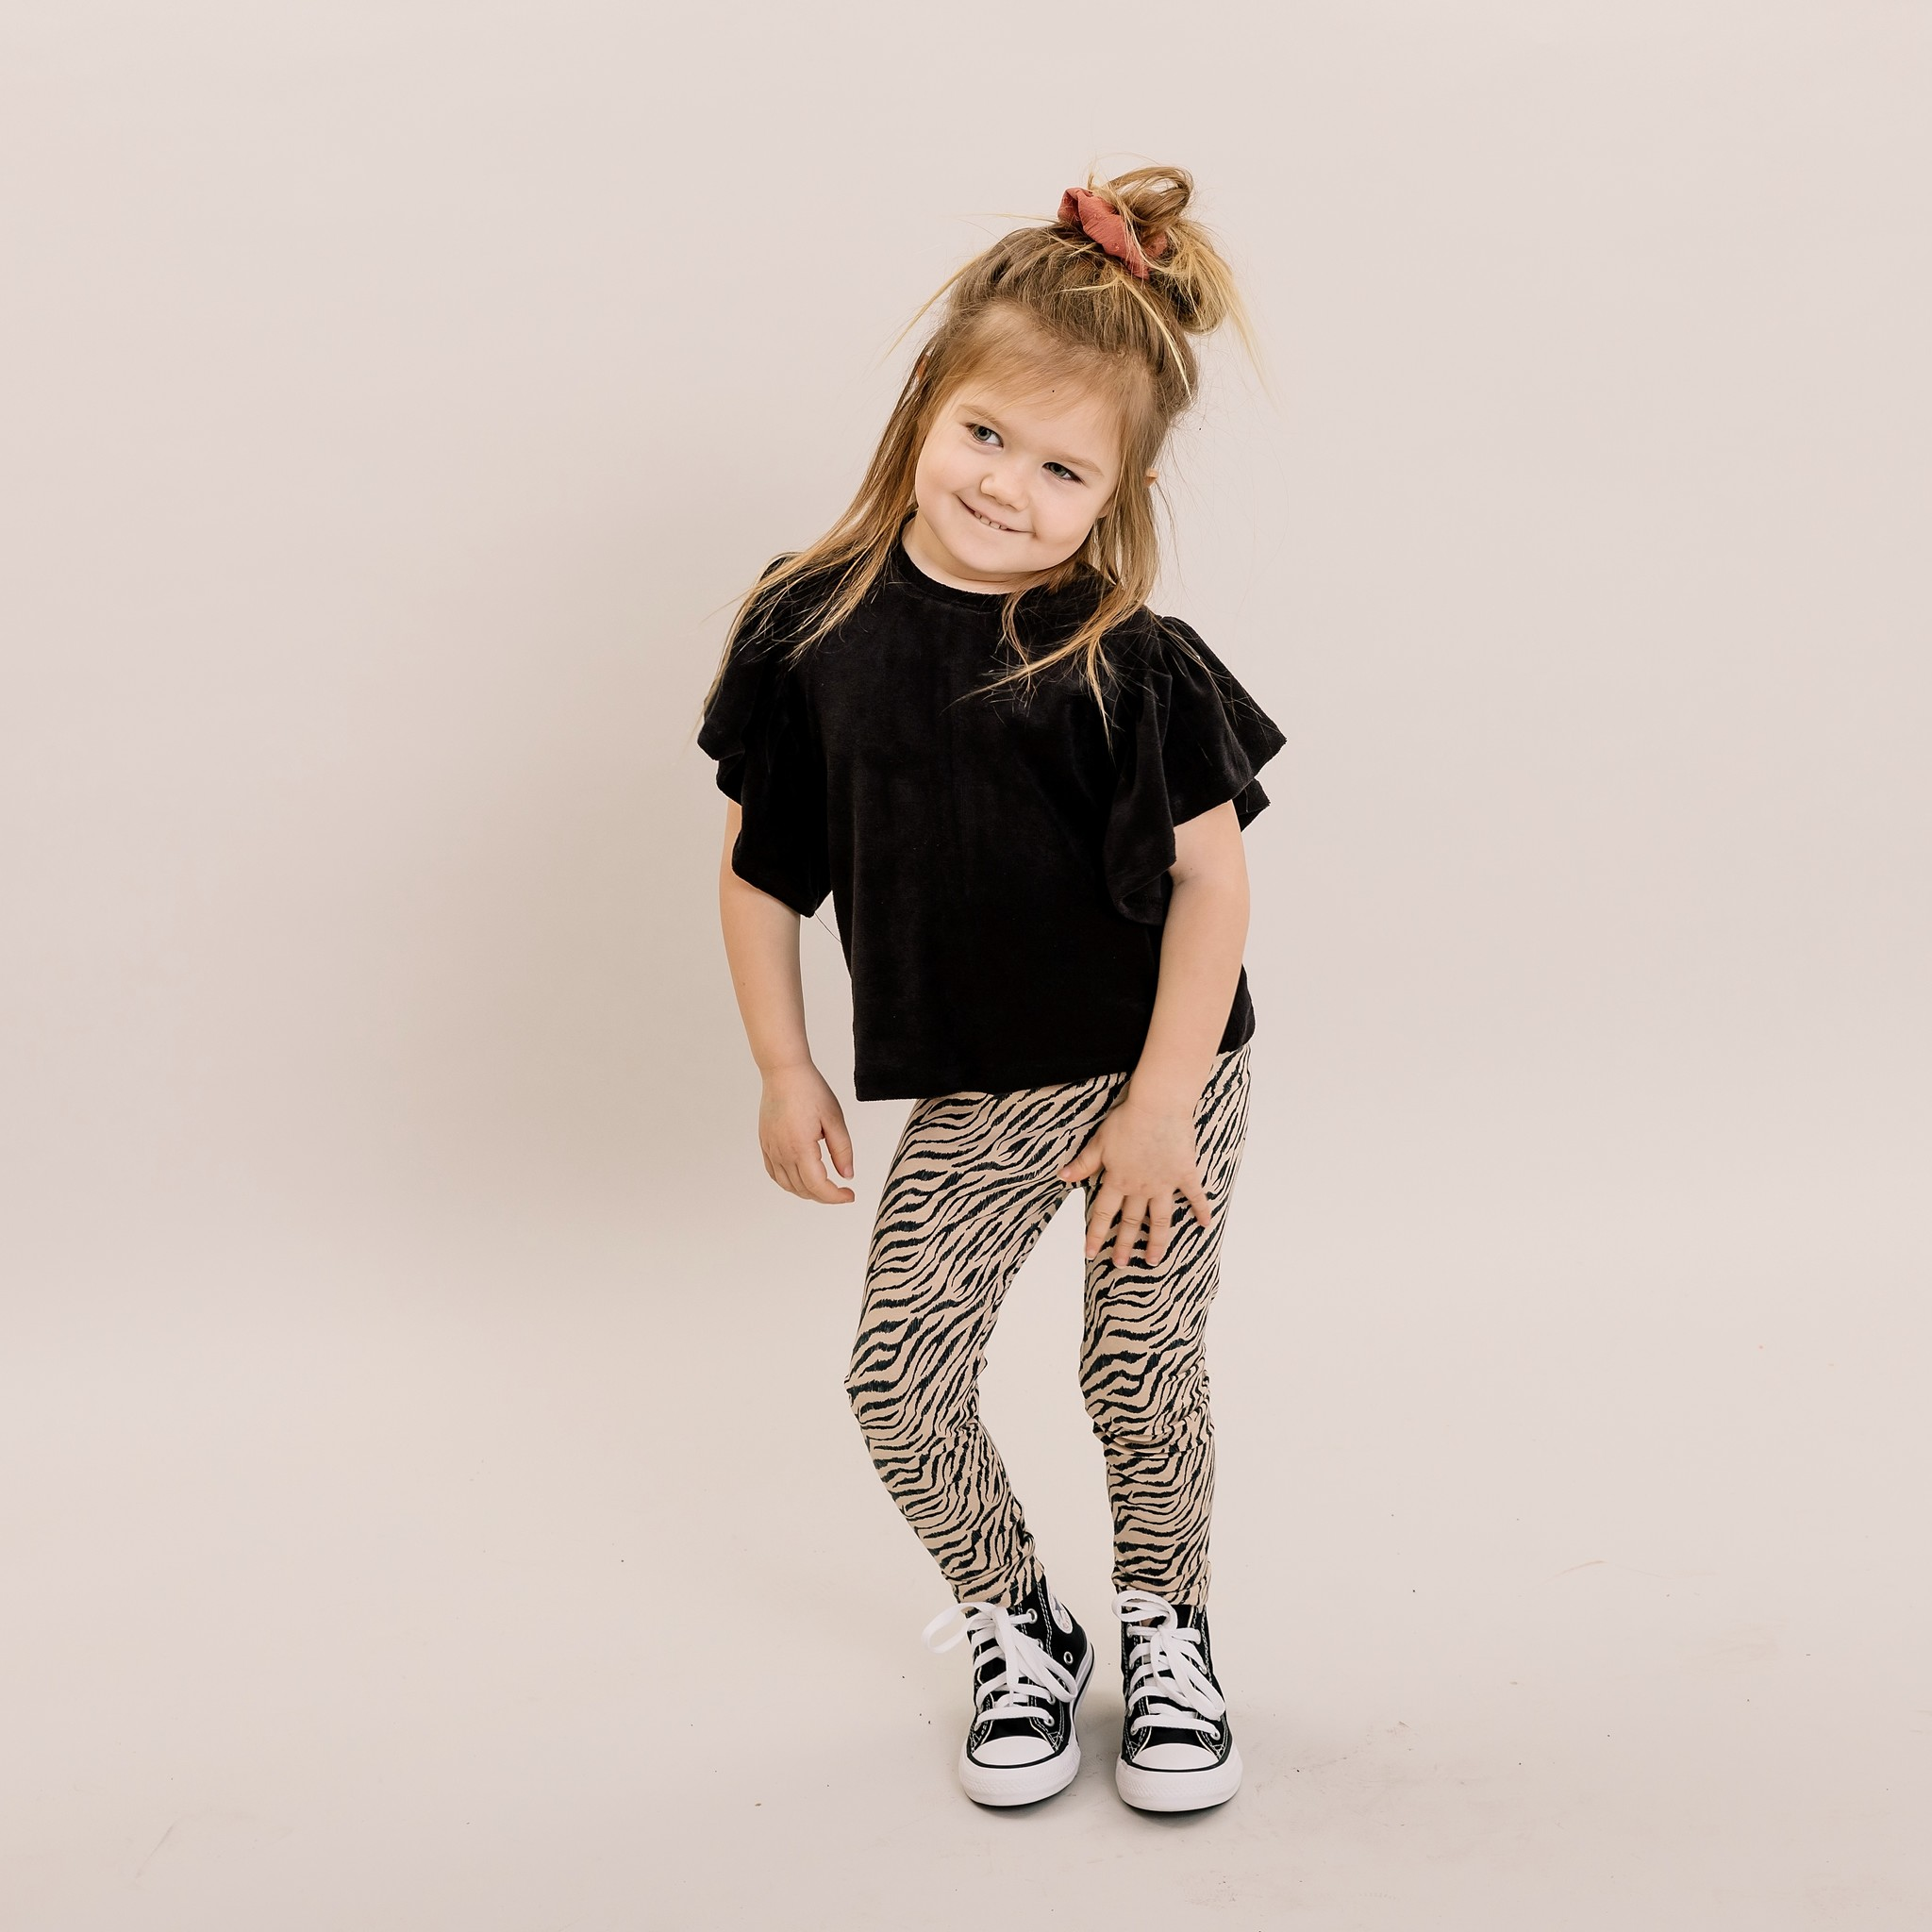 No Labels Kidswear SHIRT FOR GIRLS   WIDE SLEEVED TOP   GIRL CLOTHES